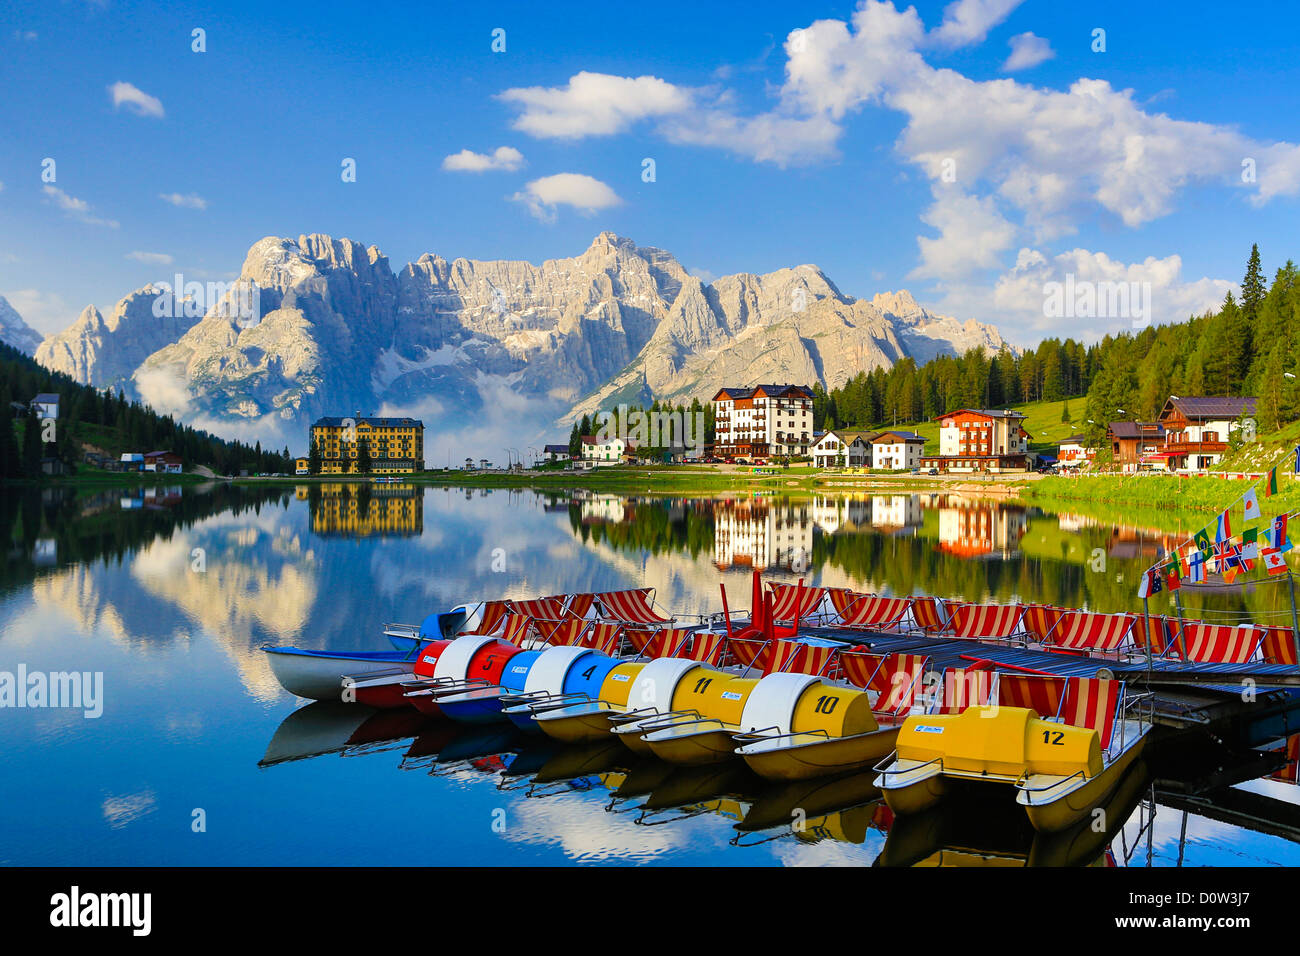 Italy, Europe, travel, Dolomite, Alps, Missurina, Lake, pedalo, boats, clouds, colourful, mountains, reflection, - Stock Image